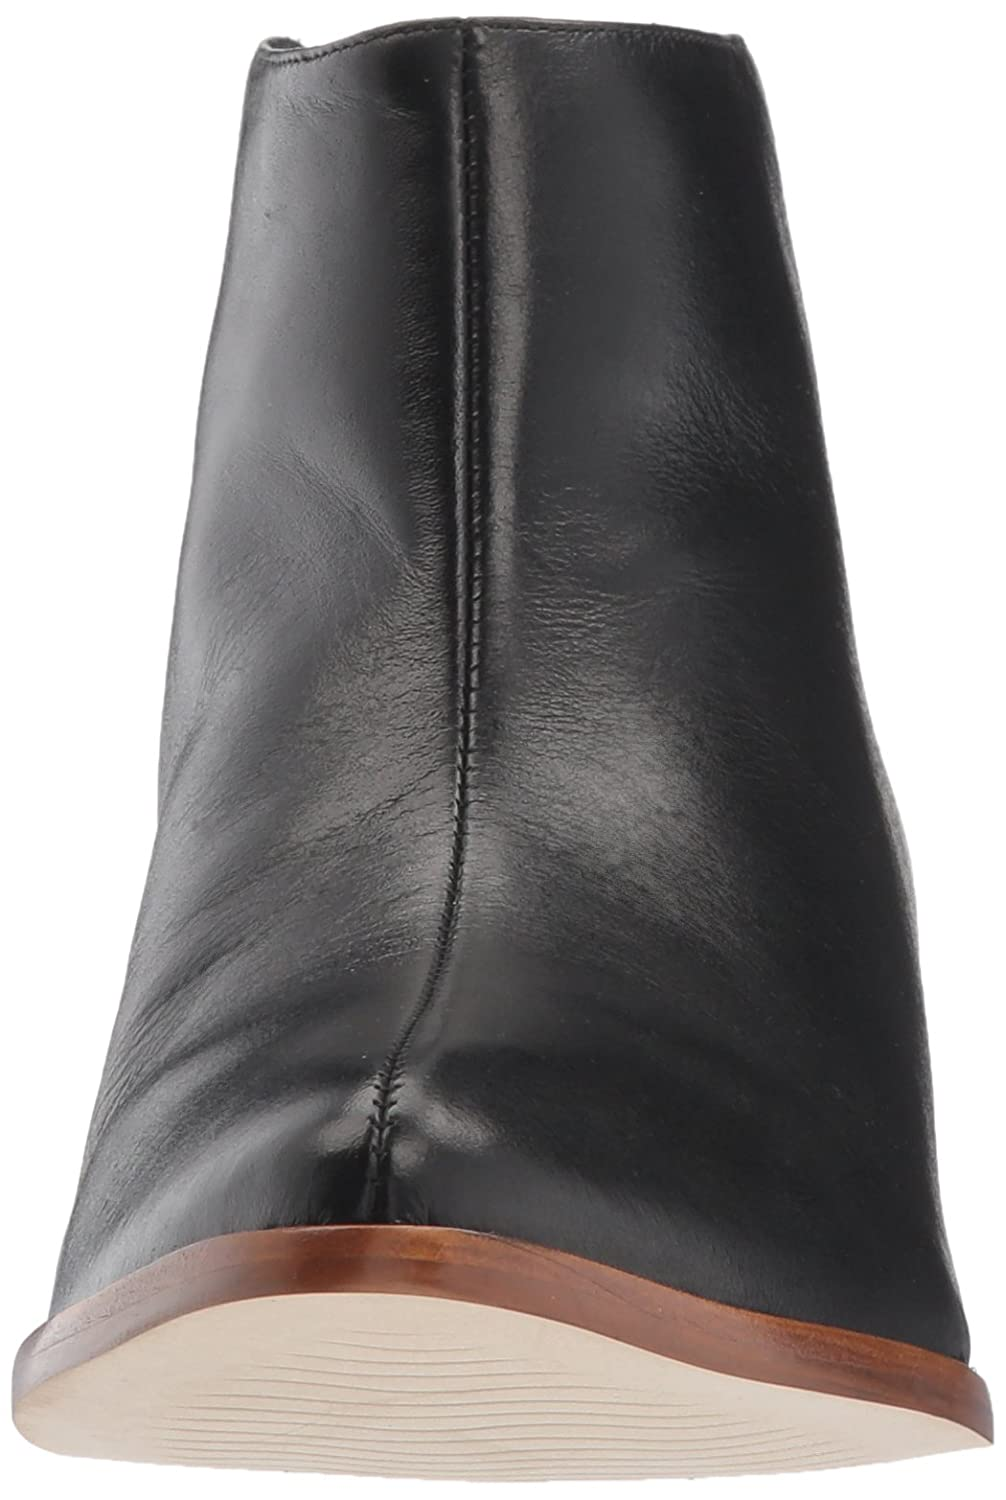 Matisse Women's Aida Ankle Boot B0767V5S9B 8.5 B(M) US|Black Leather